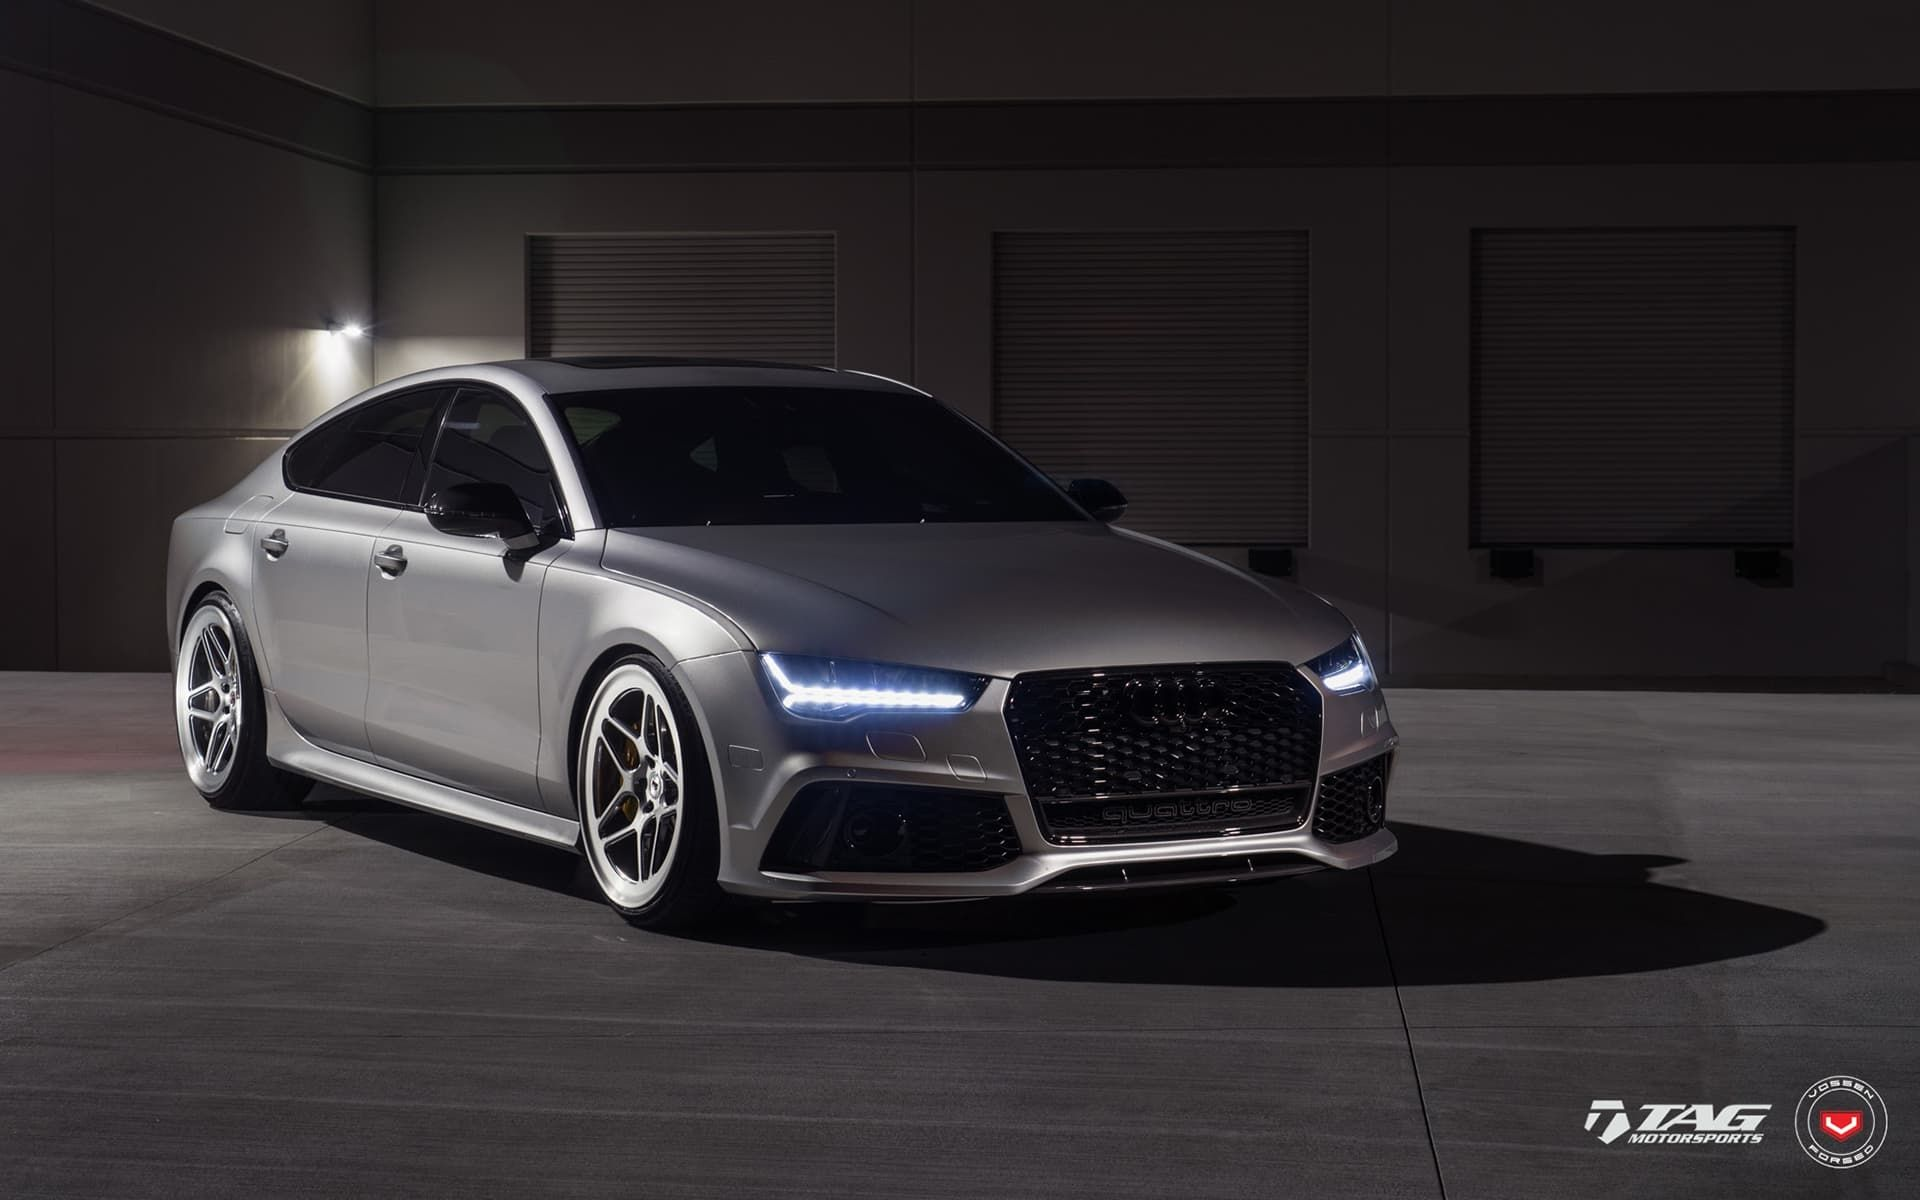 2016 Audi Rs7 Wallpapers Hd High Quality Resolution Download Audi Rs7 Sportback Grey Audi Audi Rs7